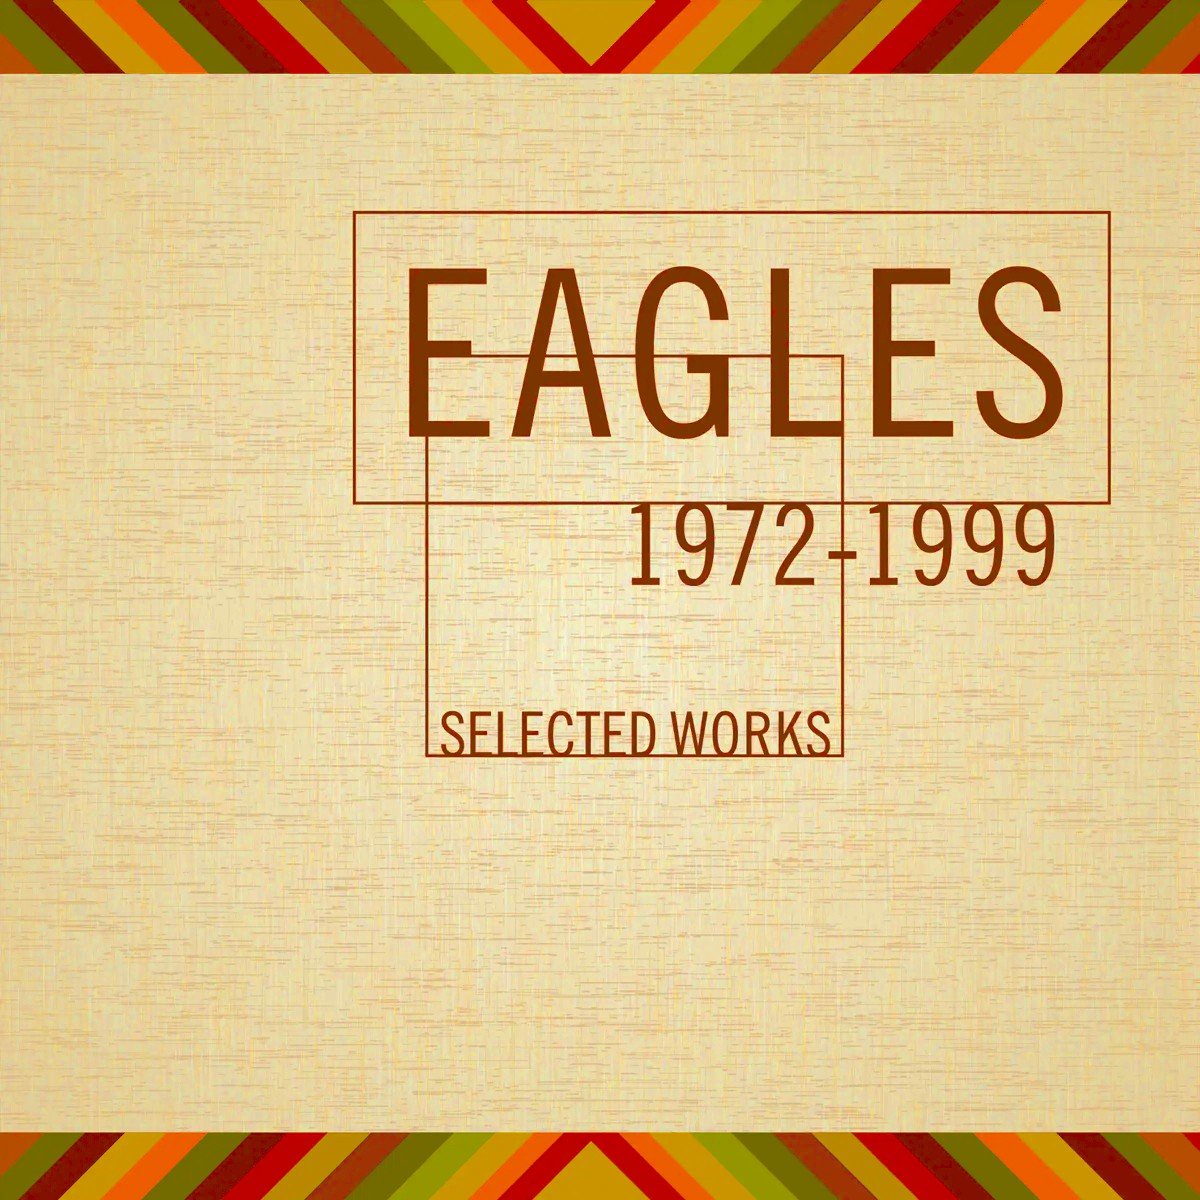 The Eagles, альбом «Selected Works»